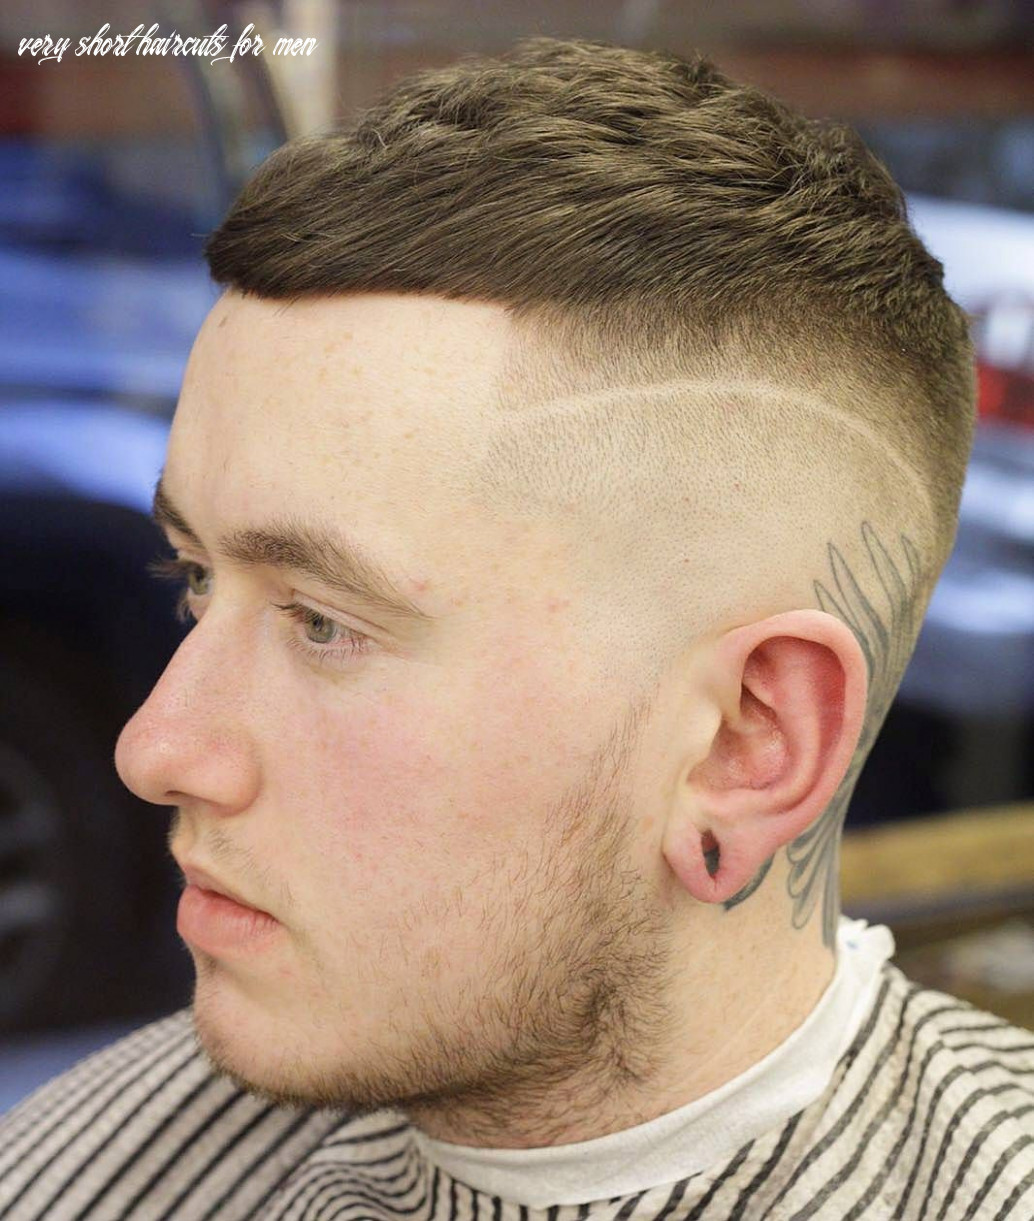 9 very short haircuts for men (with images) | very short